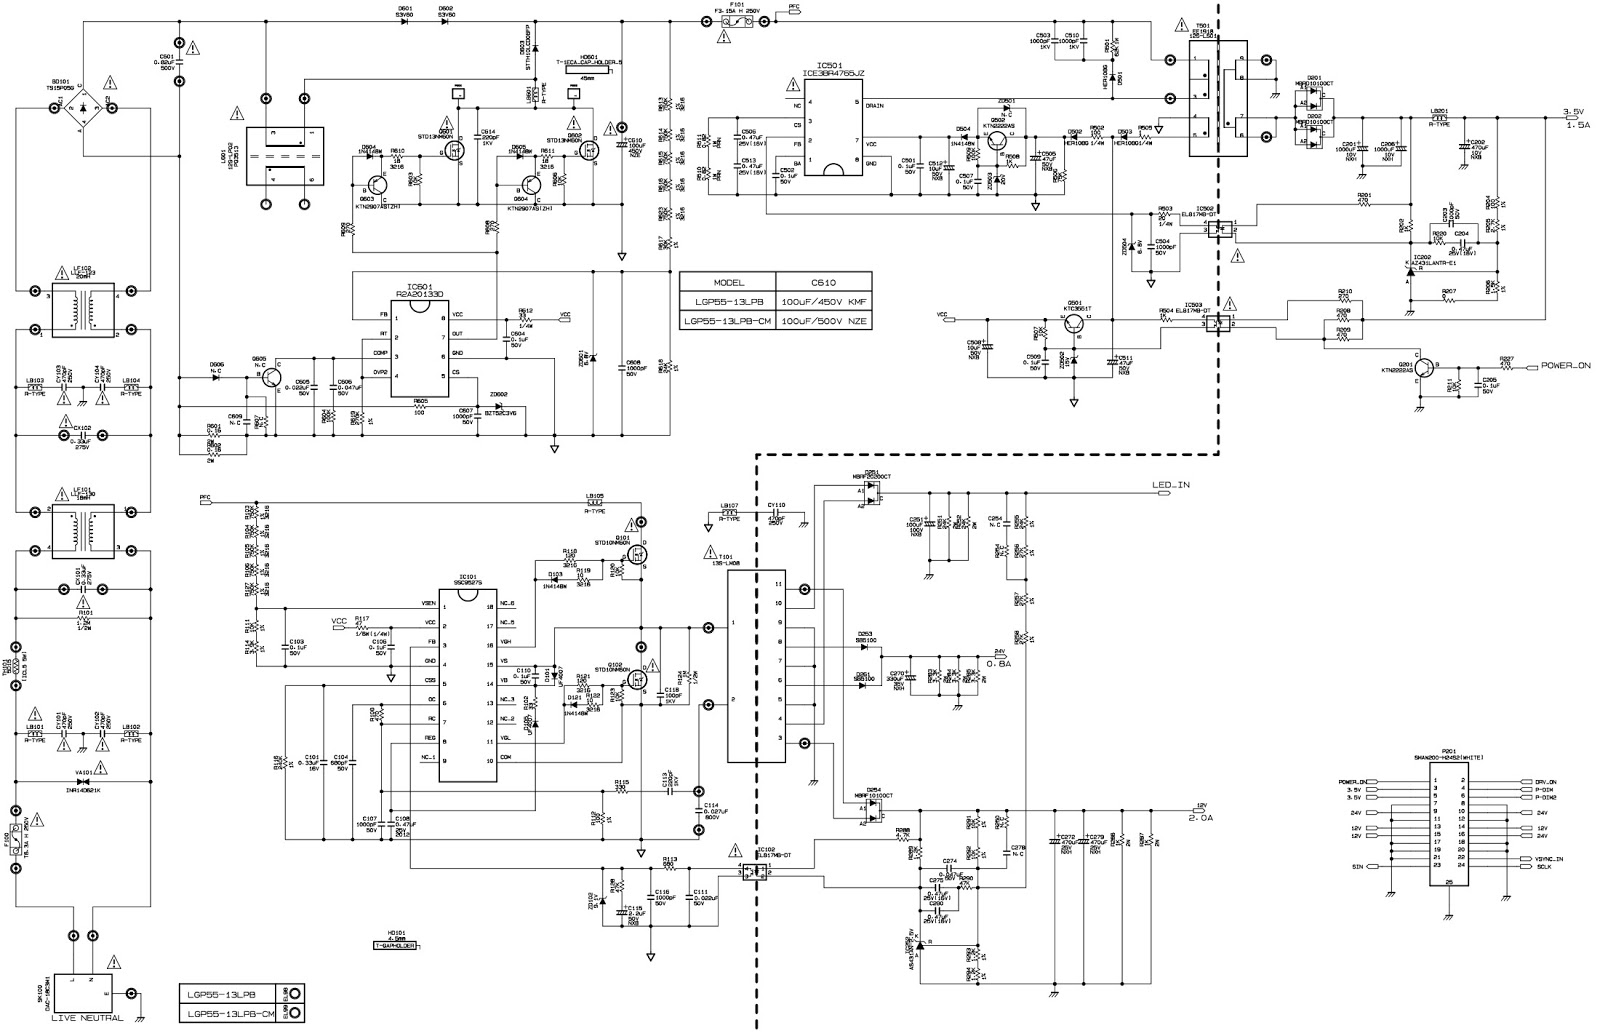 Led Tv Board Diagram - All Wiring Diagram